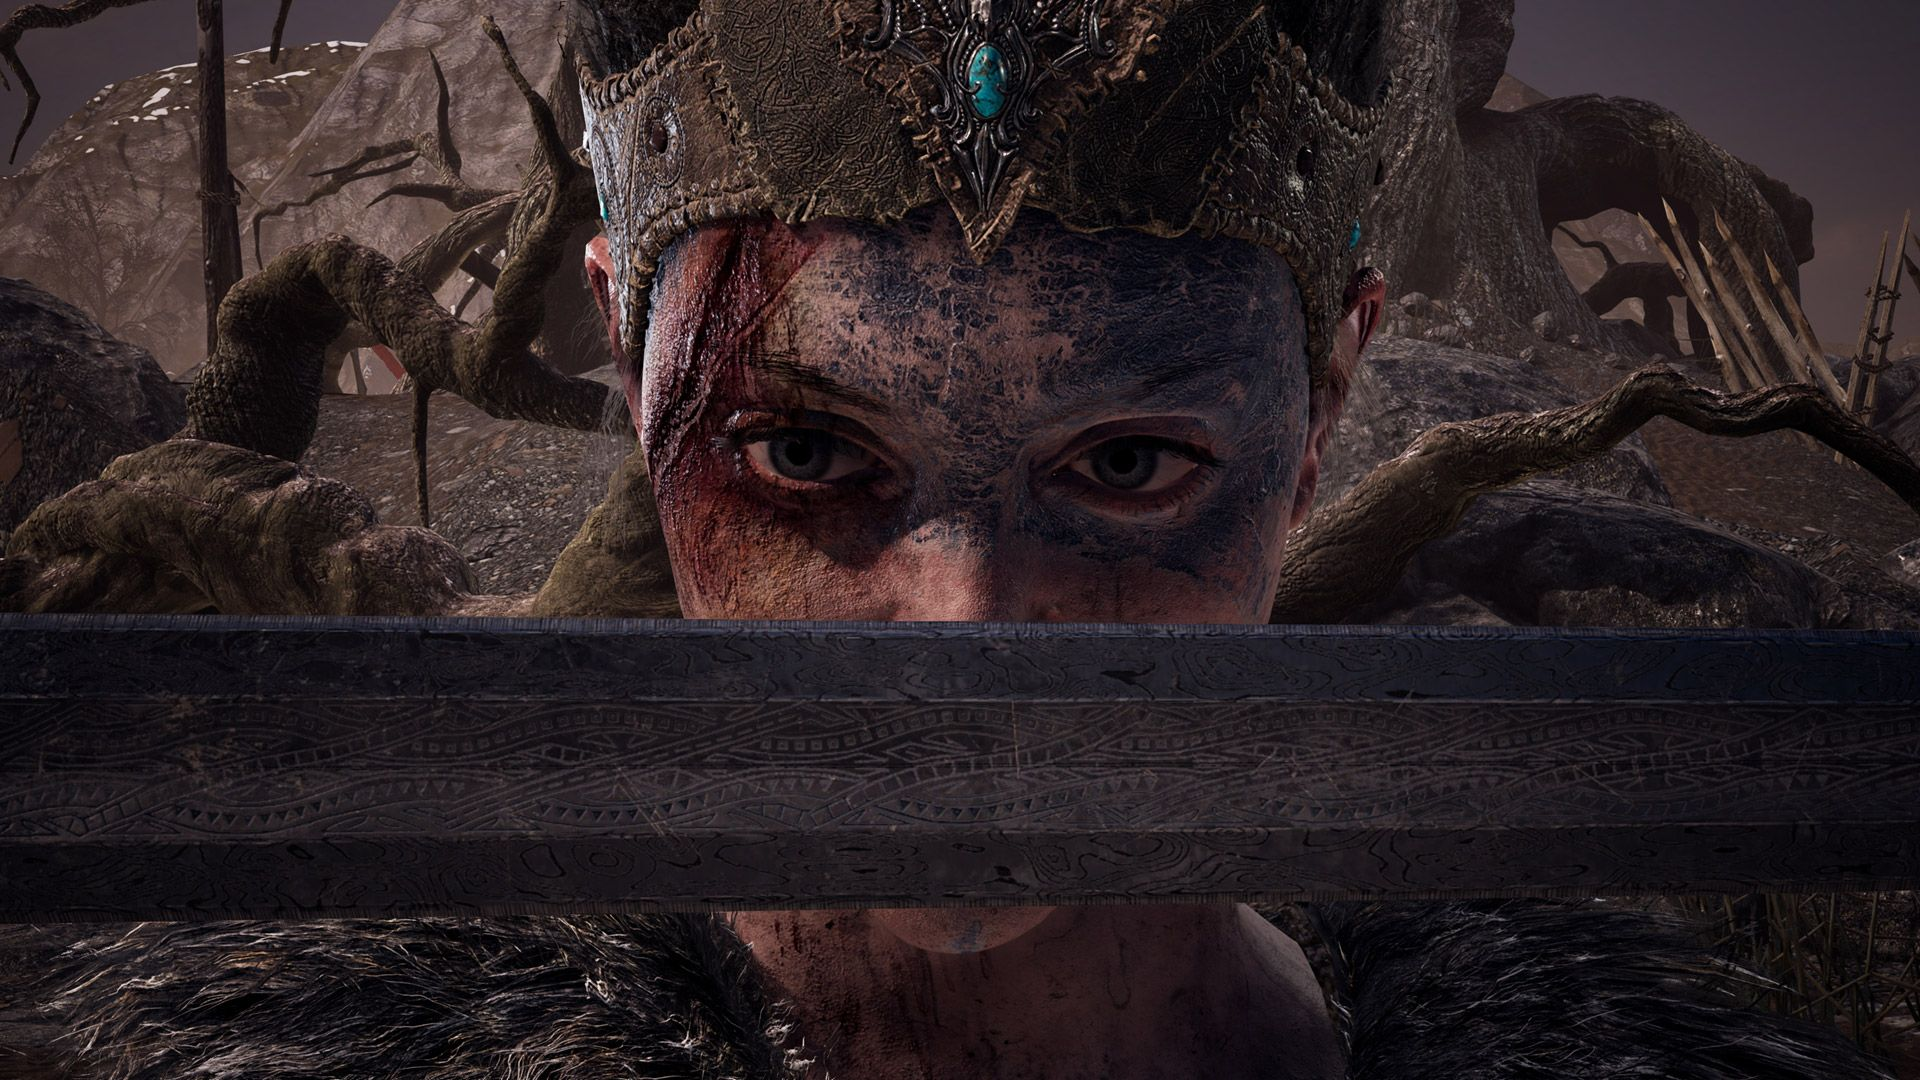 Hellblade: Senua's Sacrifice Wallpapers in 1920x1080